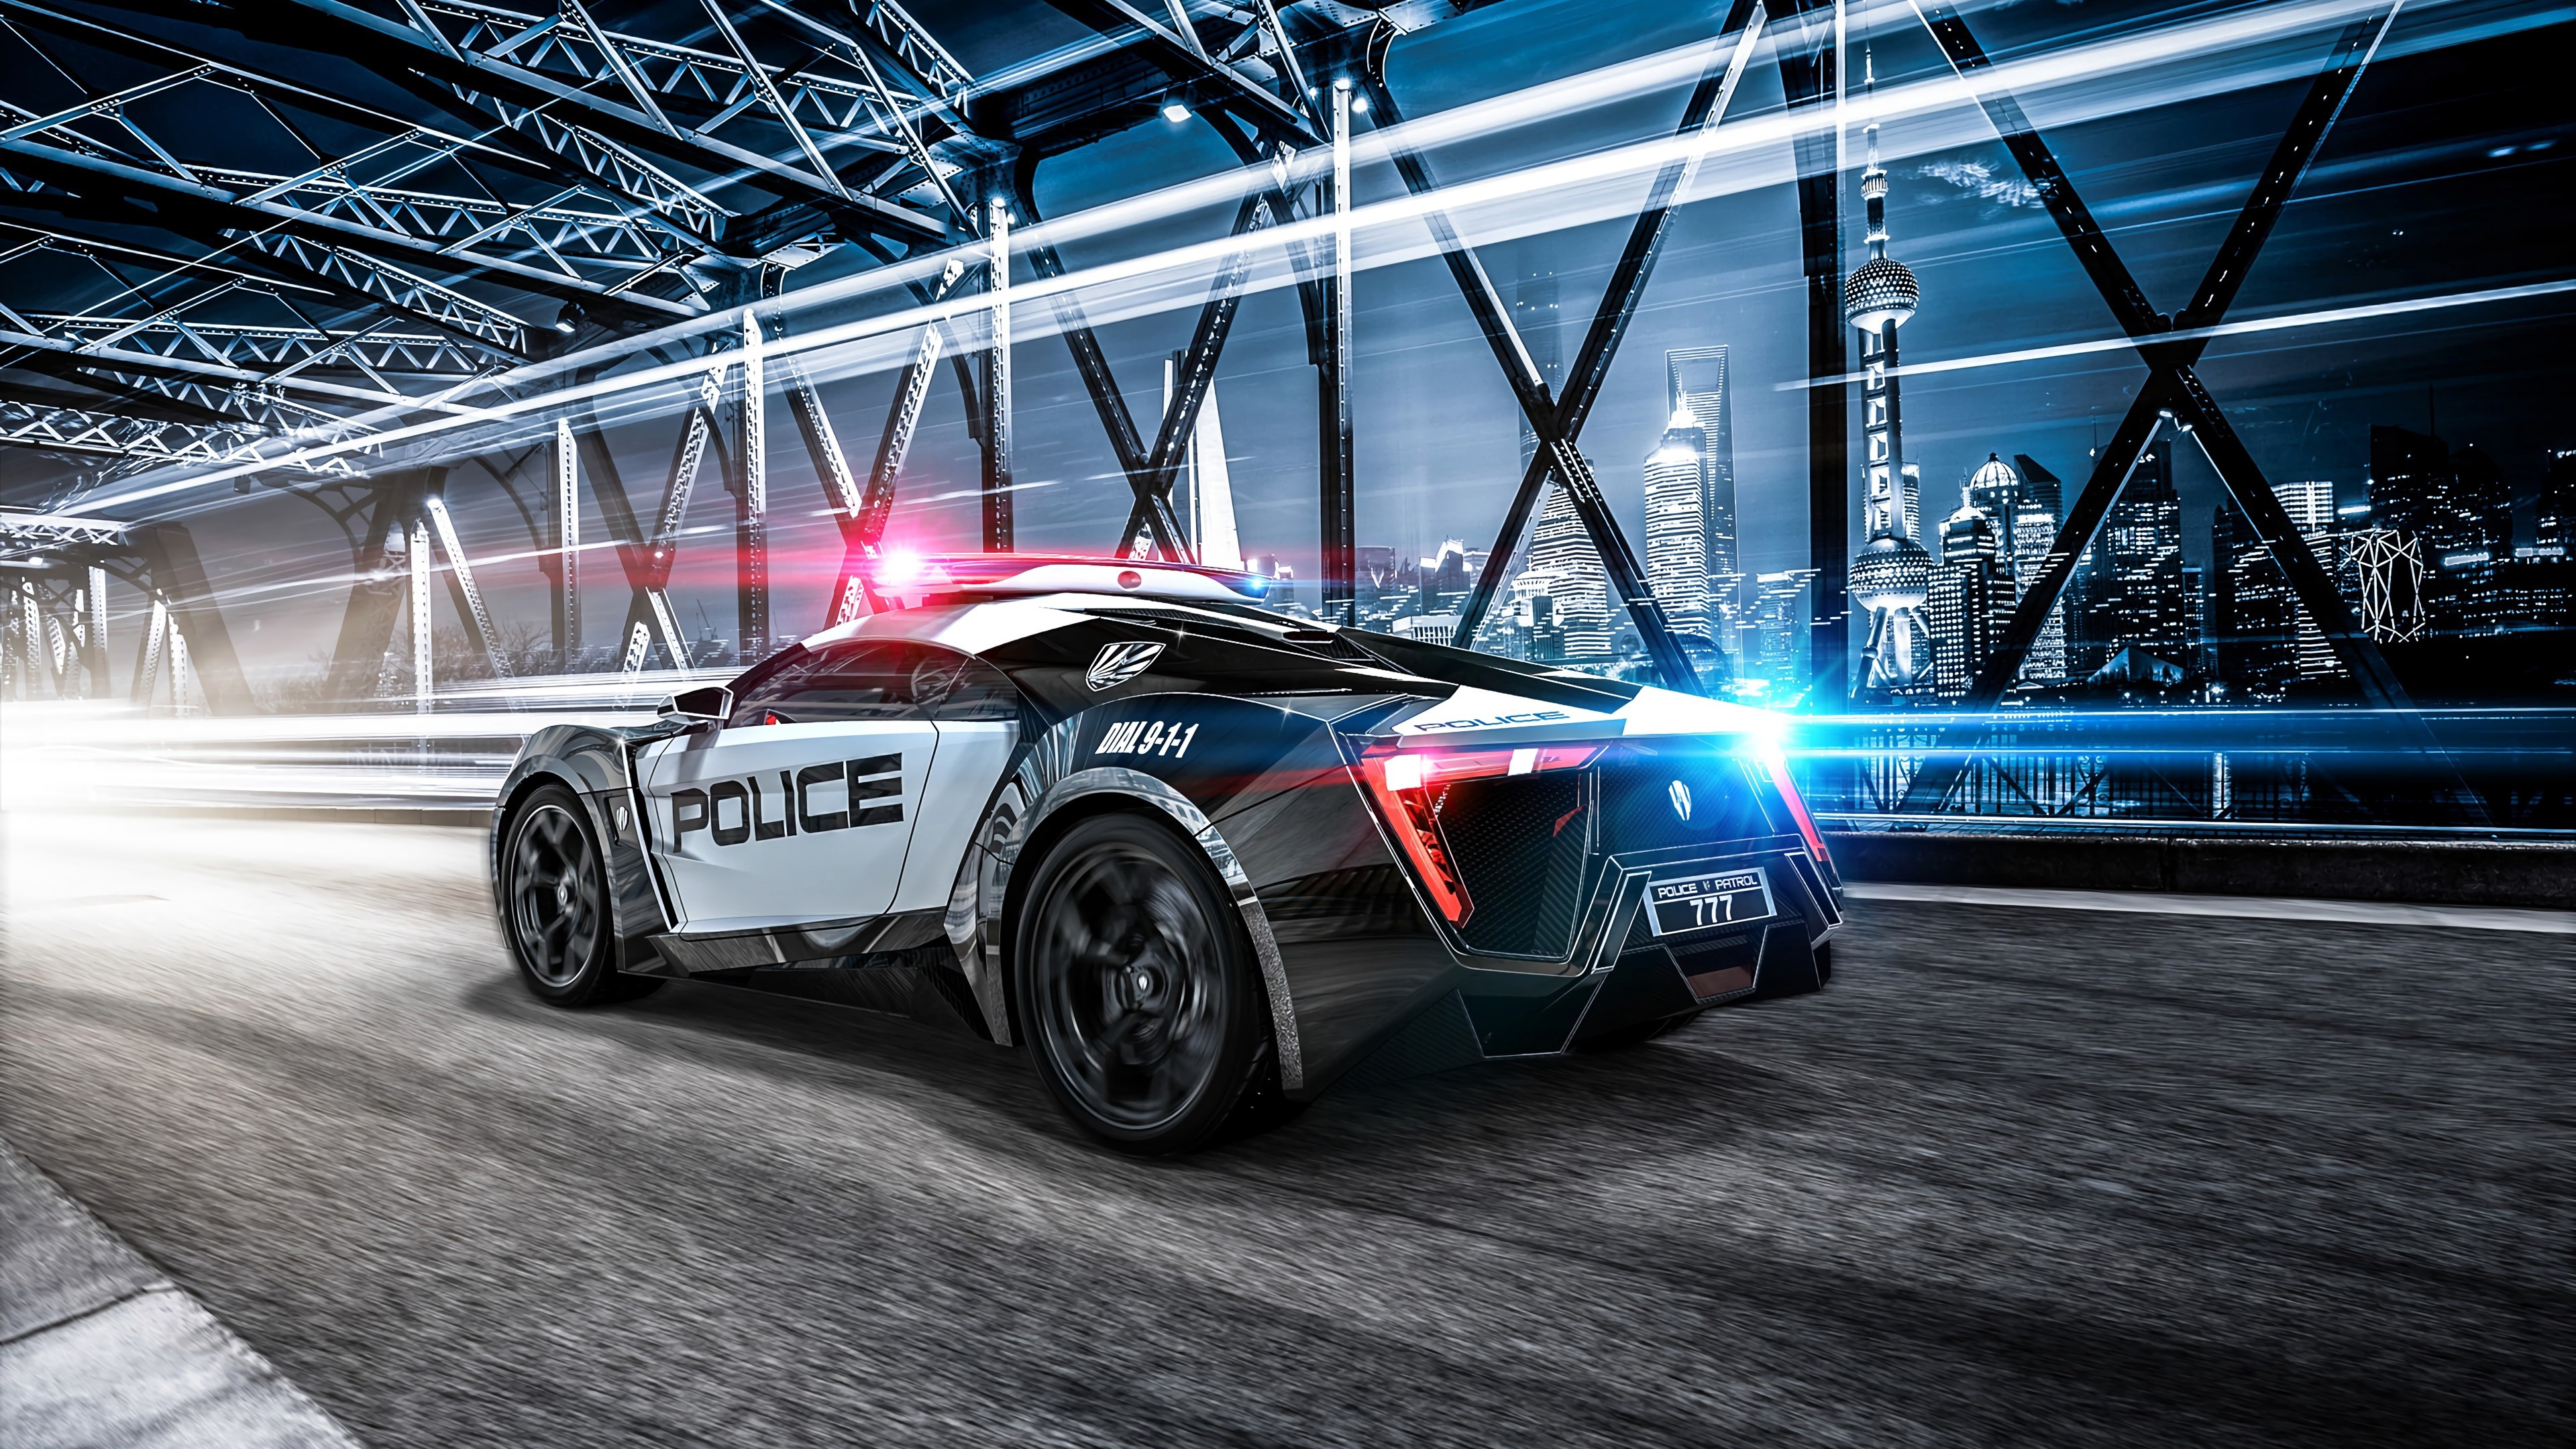 4k Car Police Sportscar Wallpaper 3840x2160